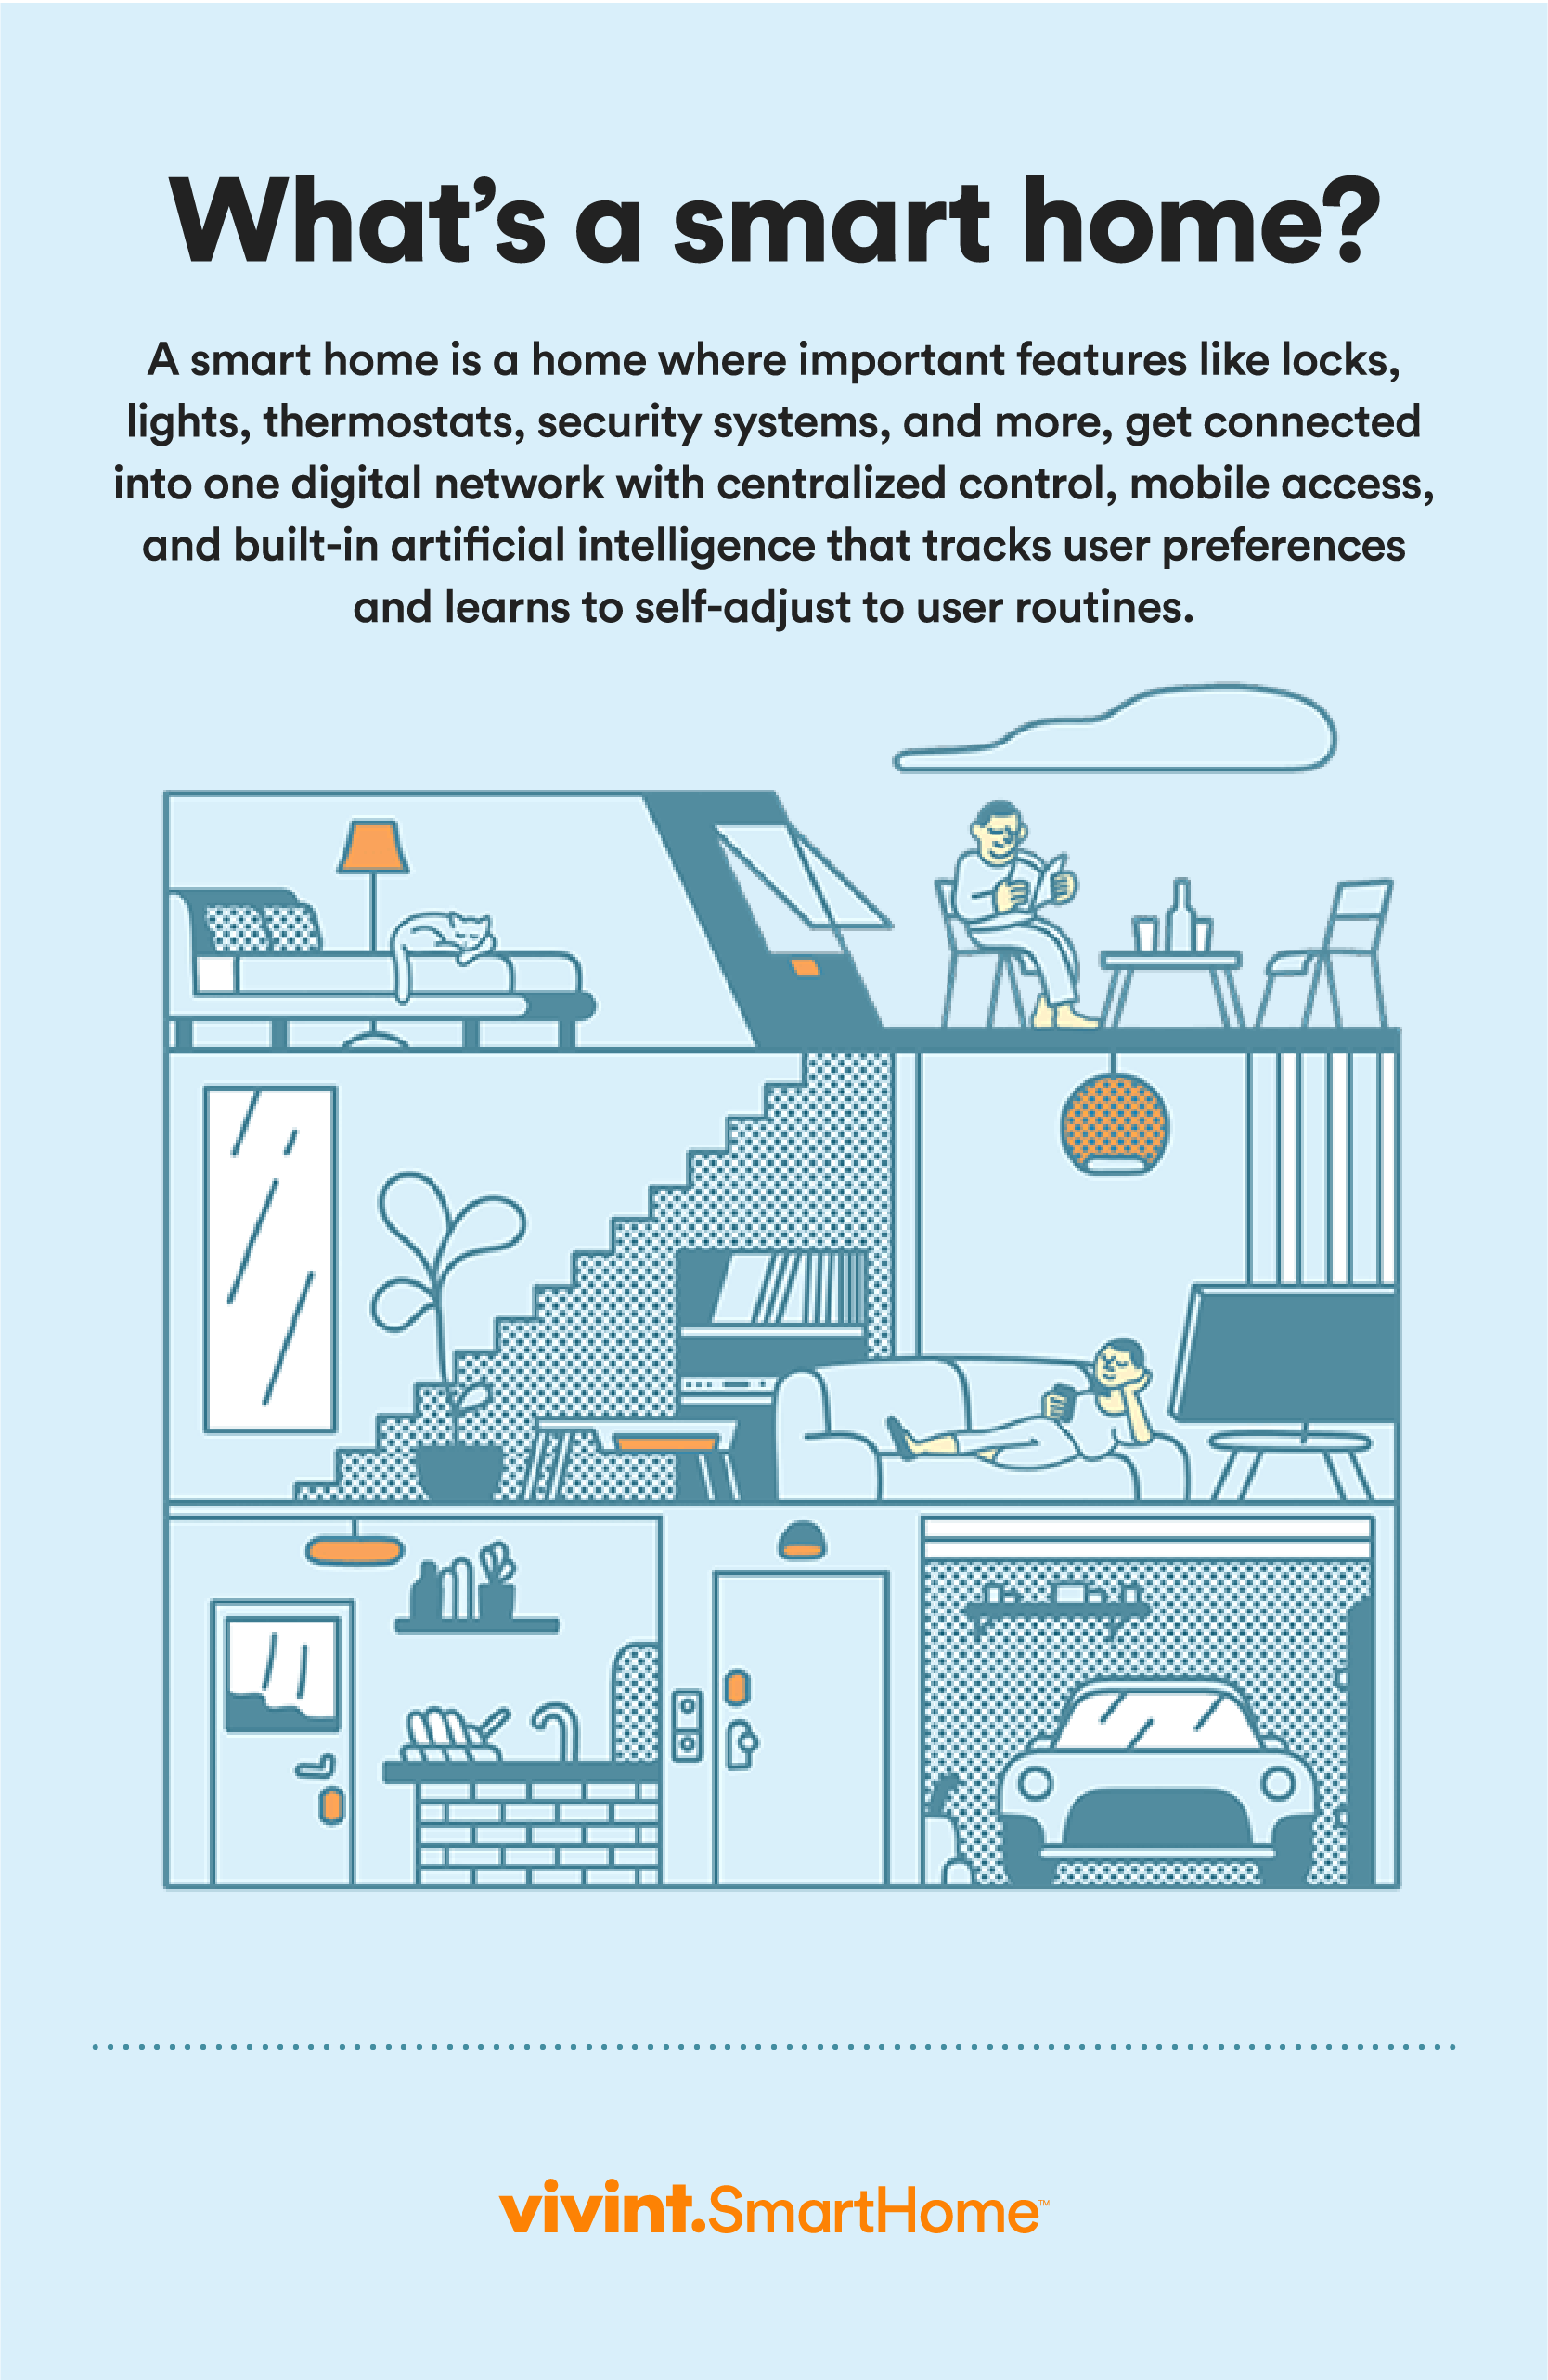 [Infographic] What is a Smart Home? Smart home, Smart